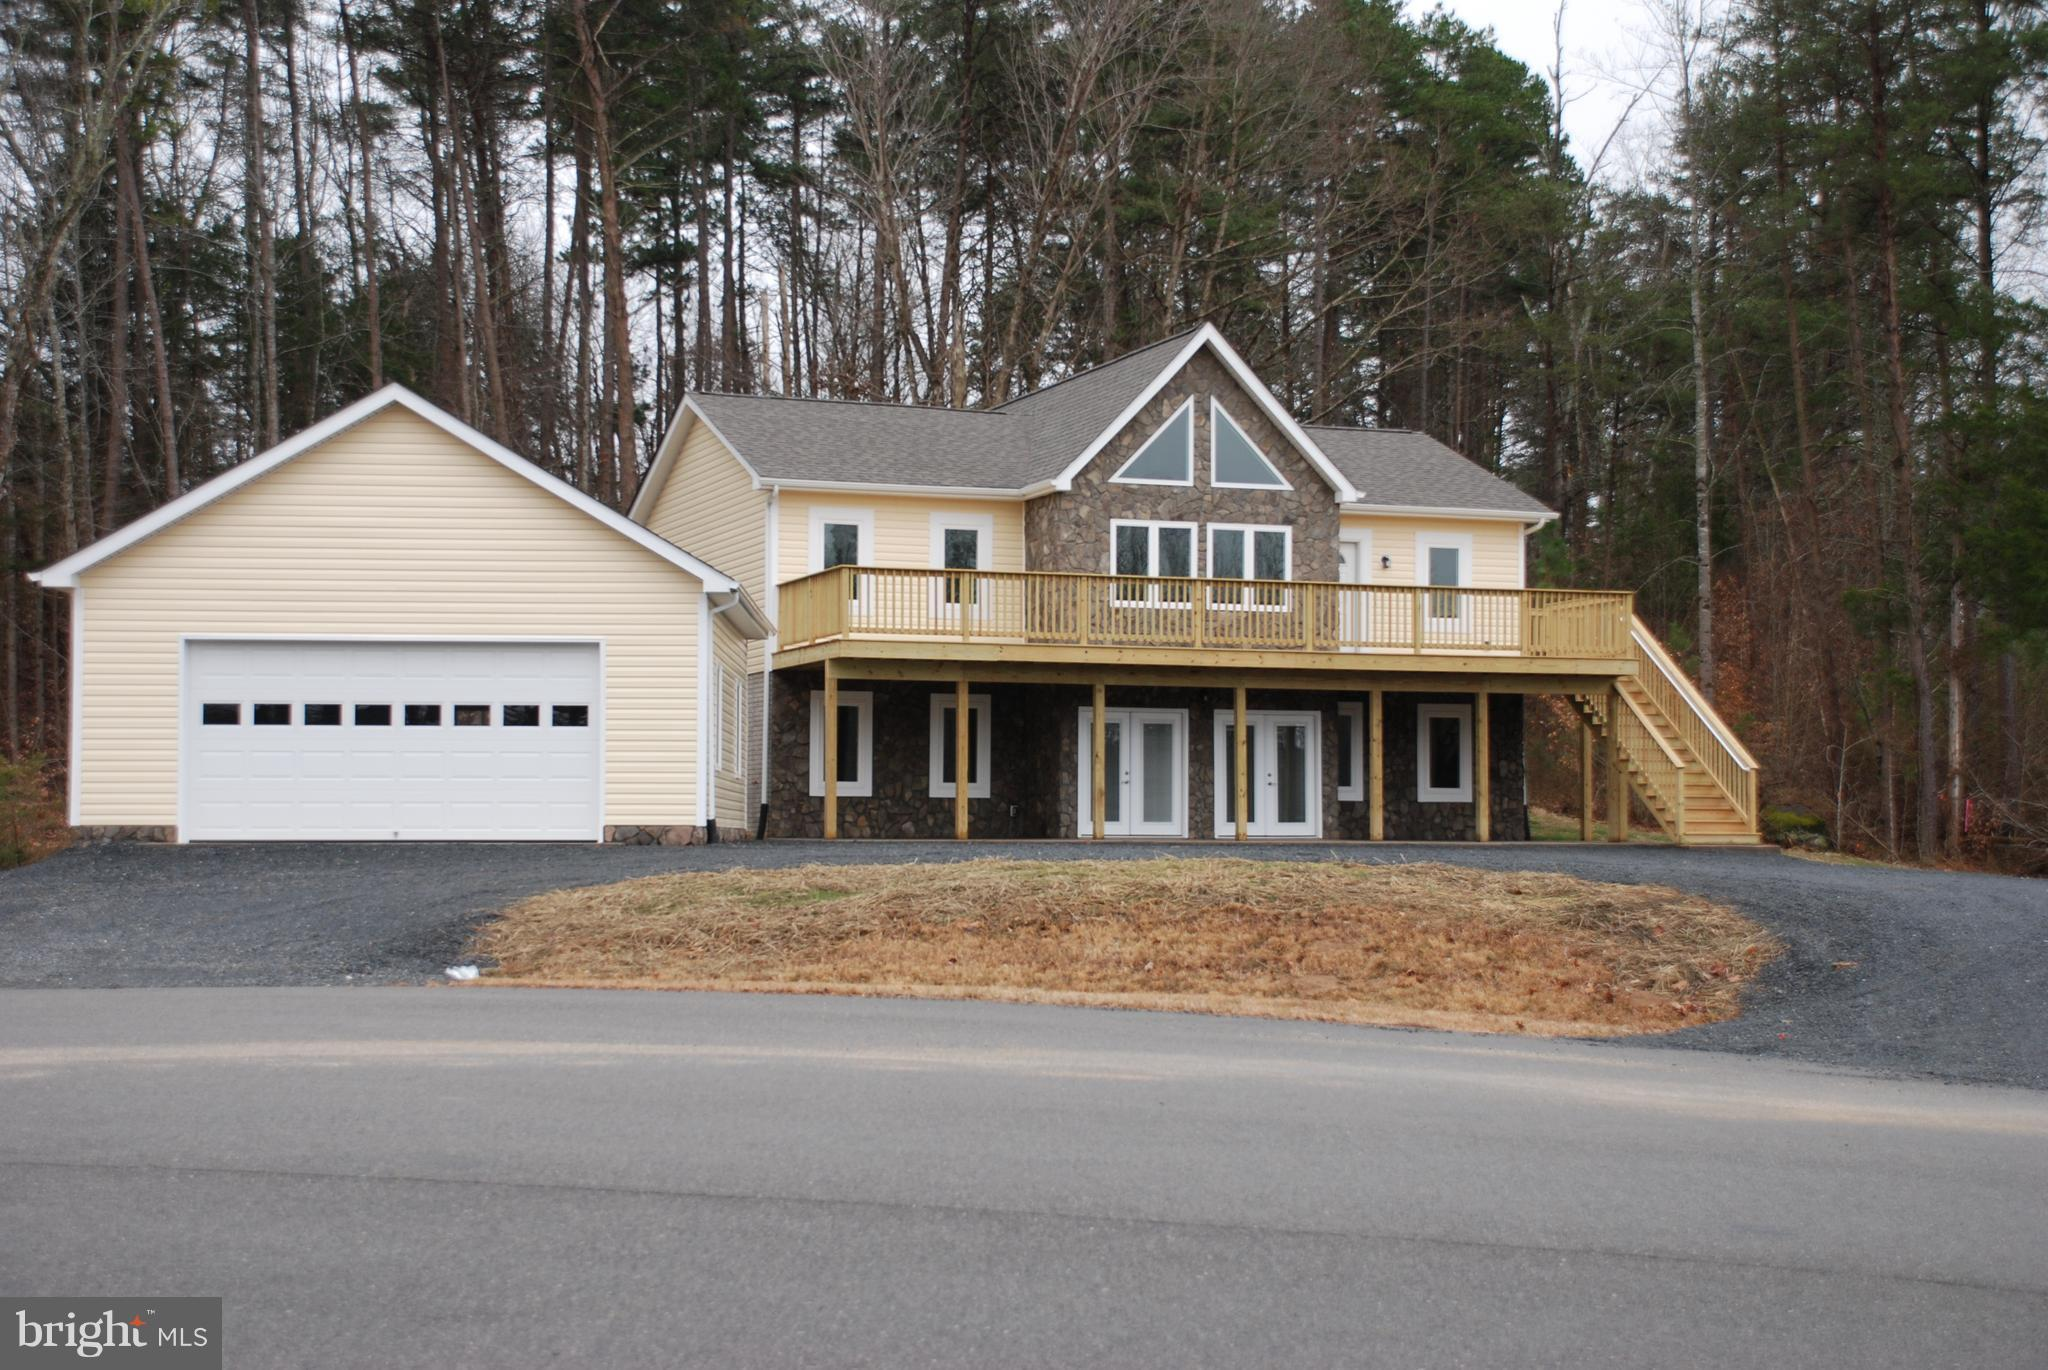 120 SHADY OAKS LANE, Louisa, VA 23093